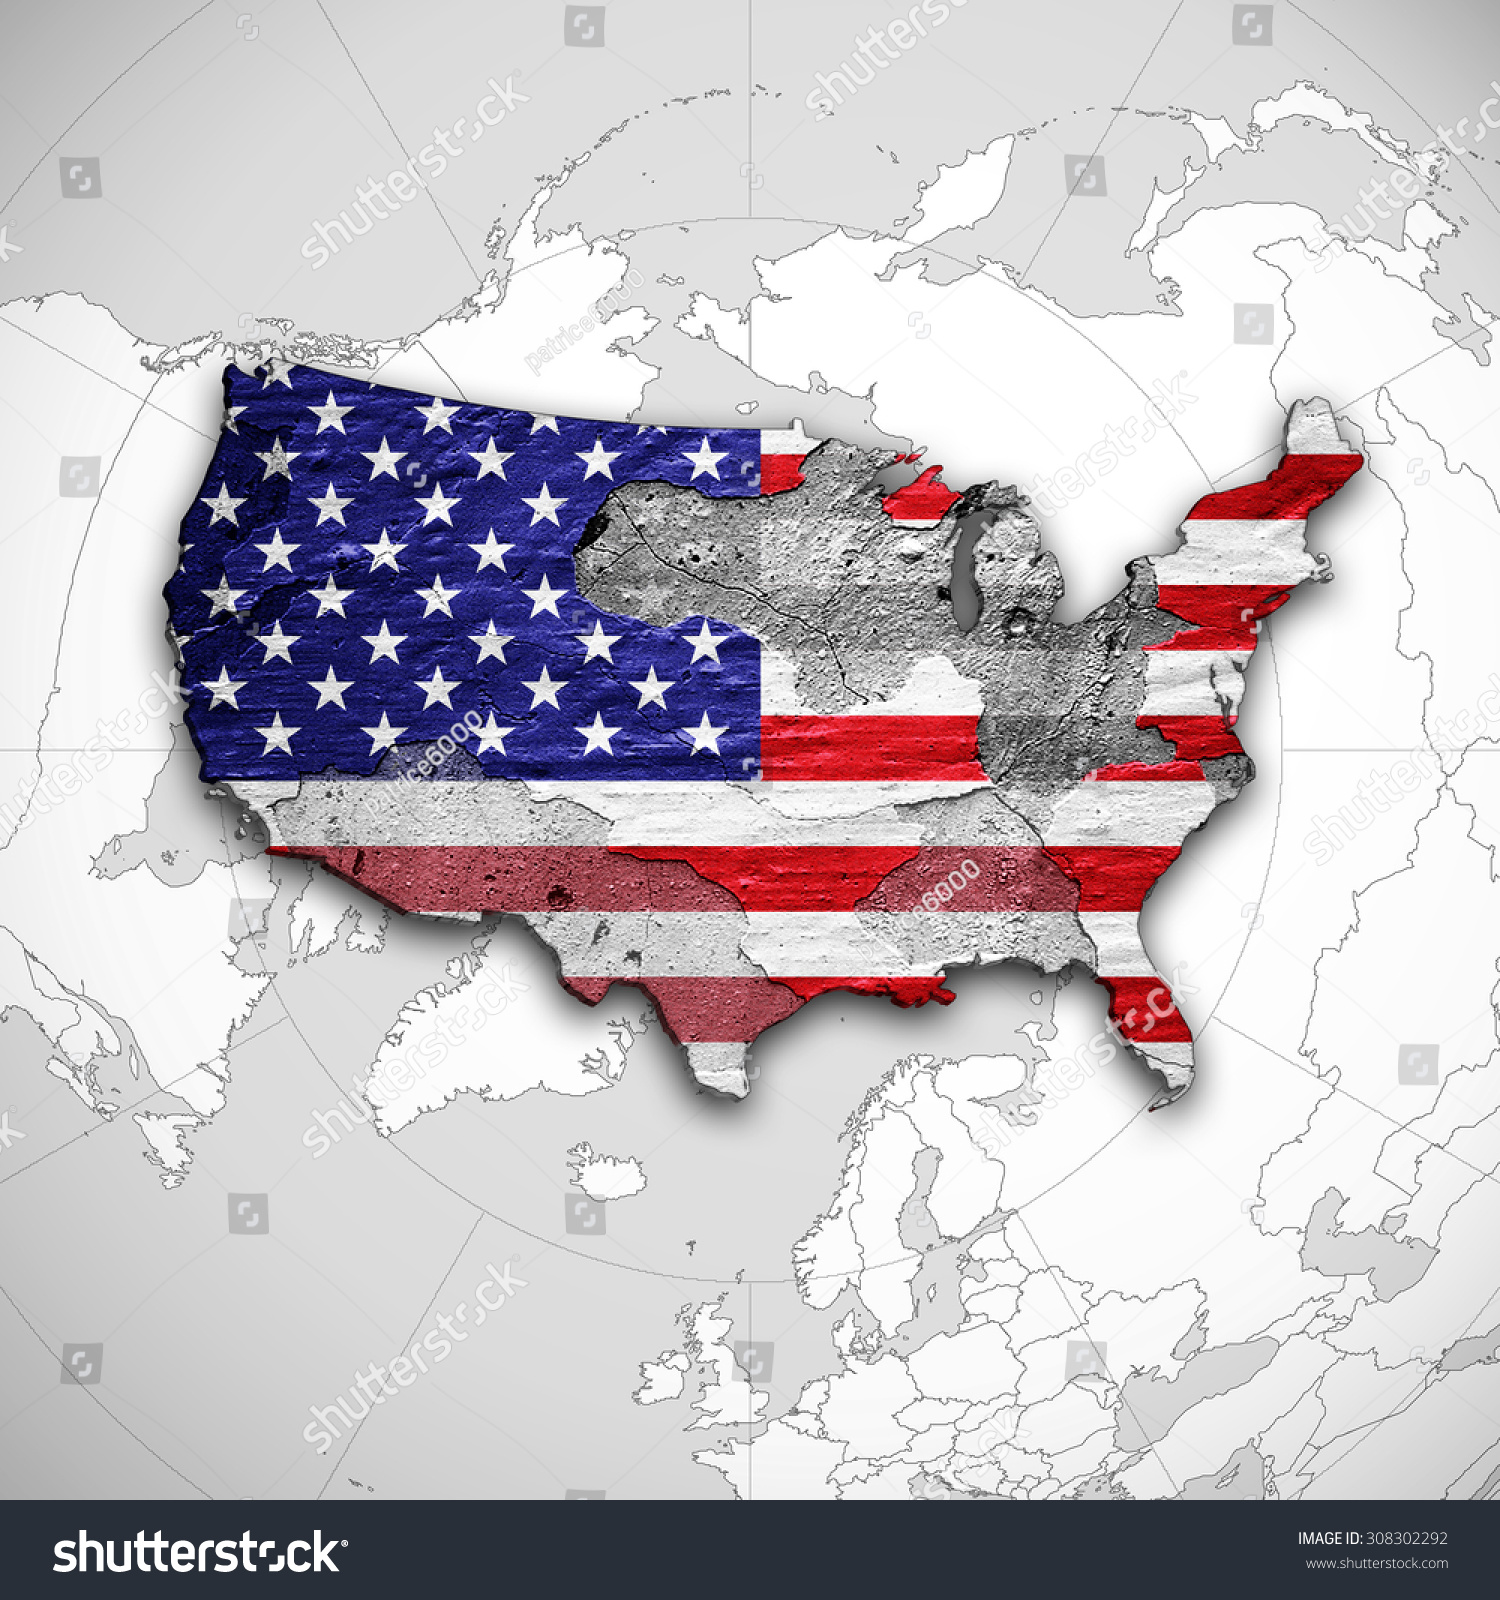 America flag map wall world map stock illustration 308302292 america flag map wall world map stock illustration 308302292 shutterstock gumiabroncs Images